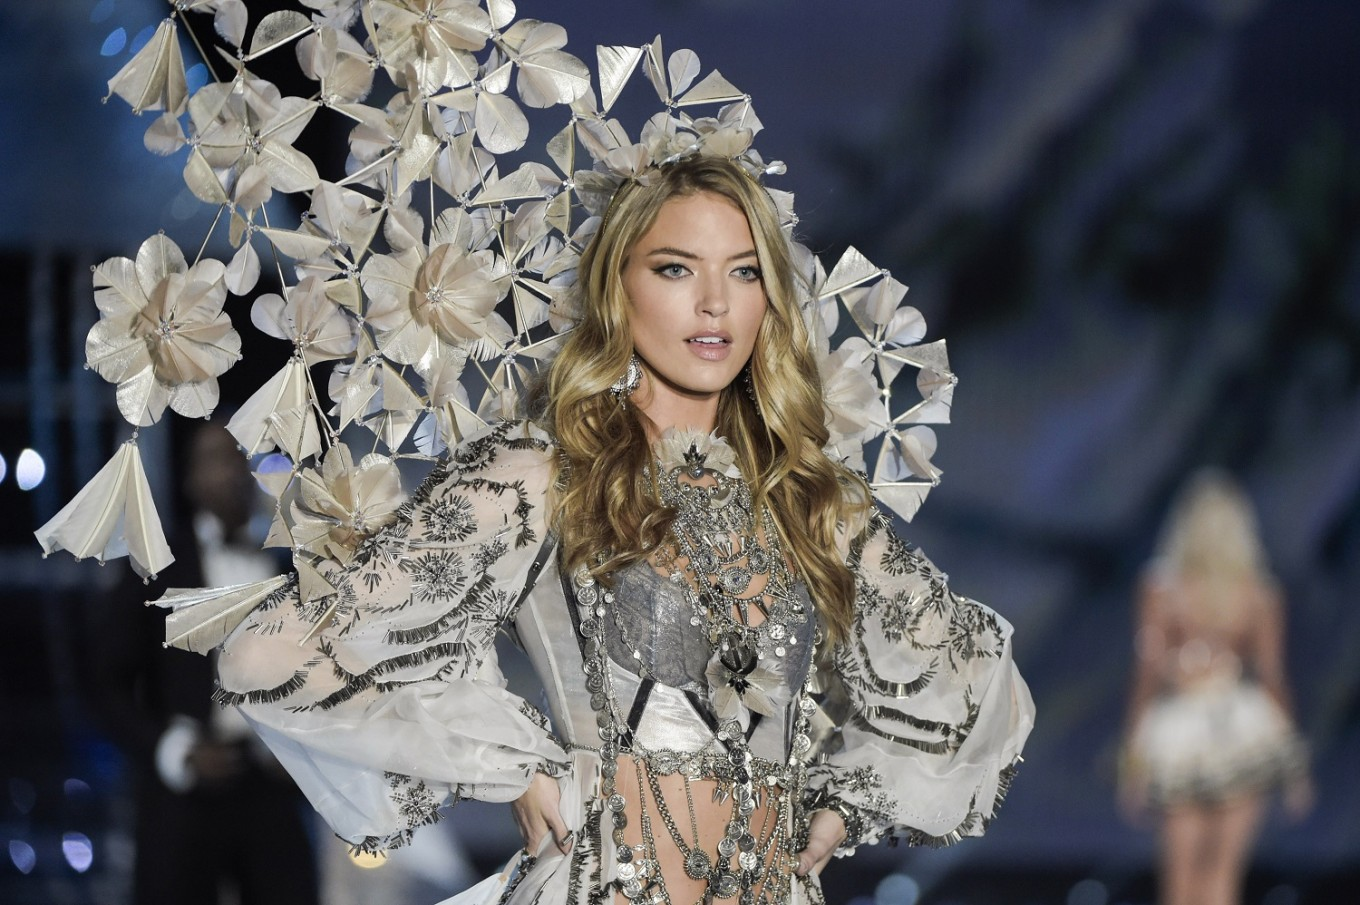 Victoria's Secret says TV no longer 'right fit' for lingerie show